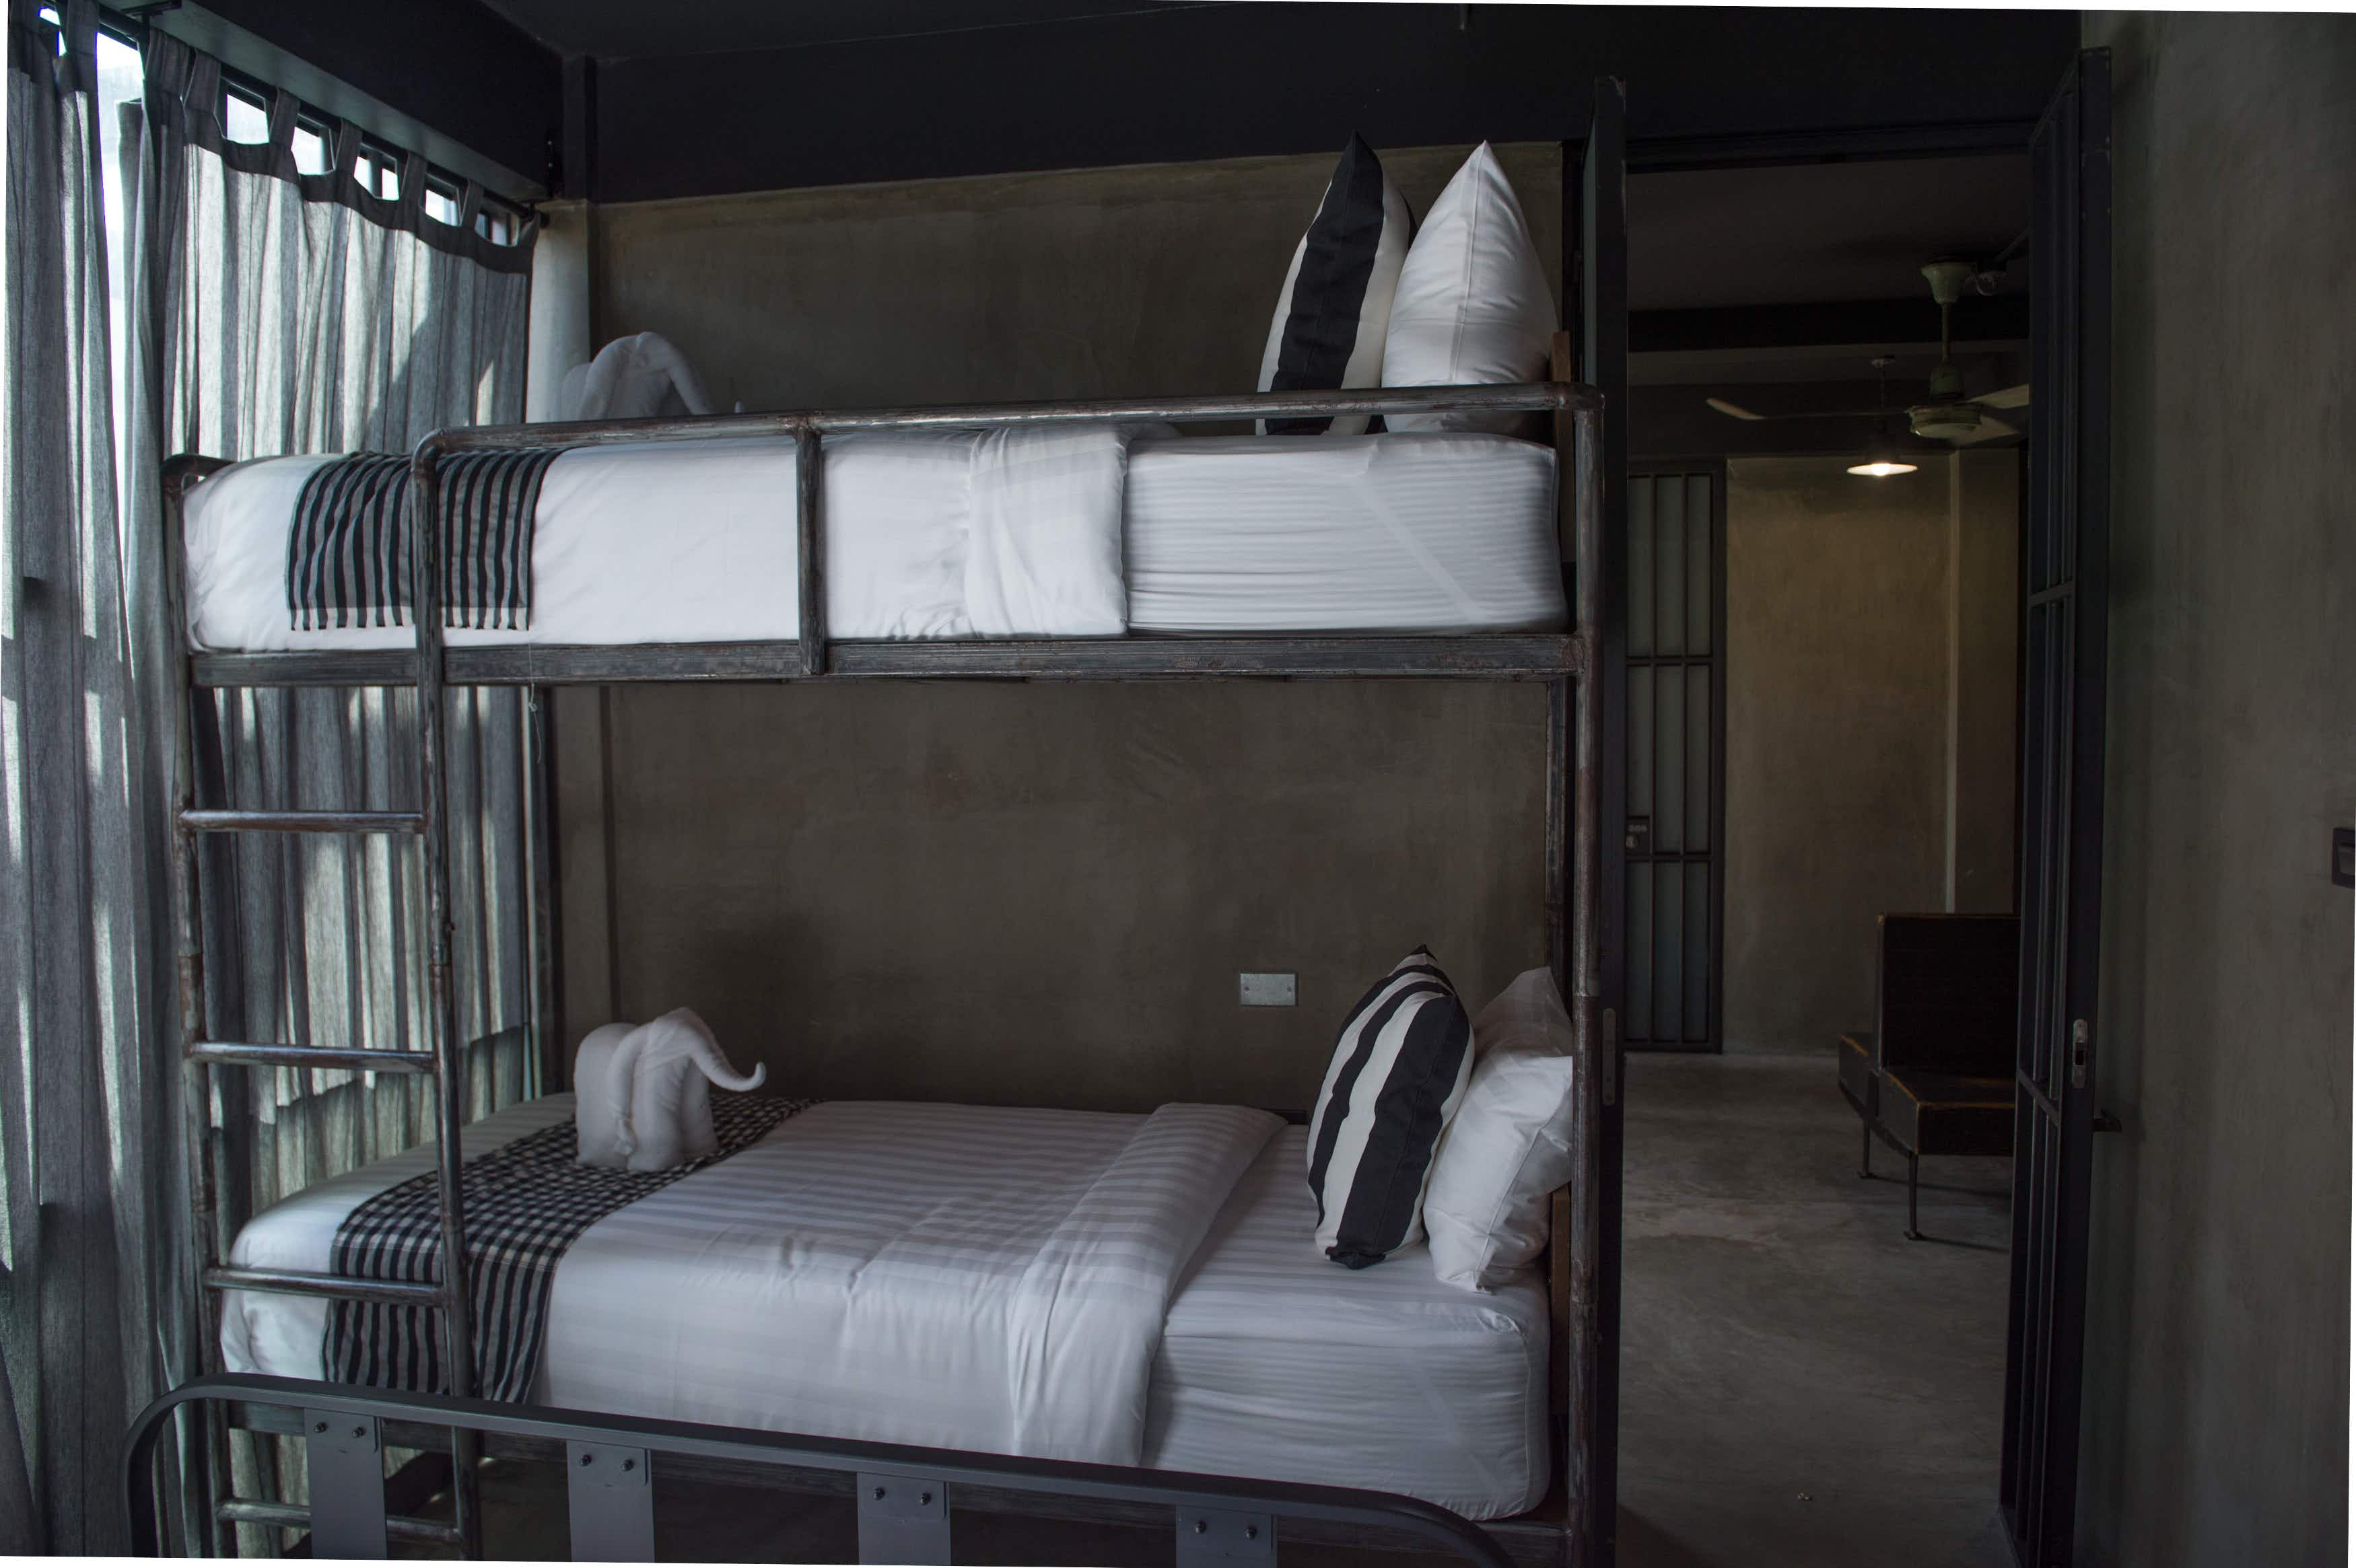 Lockup holiday style: spend a night behind bars in Bangkok's new prison-themed hostel